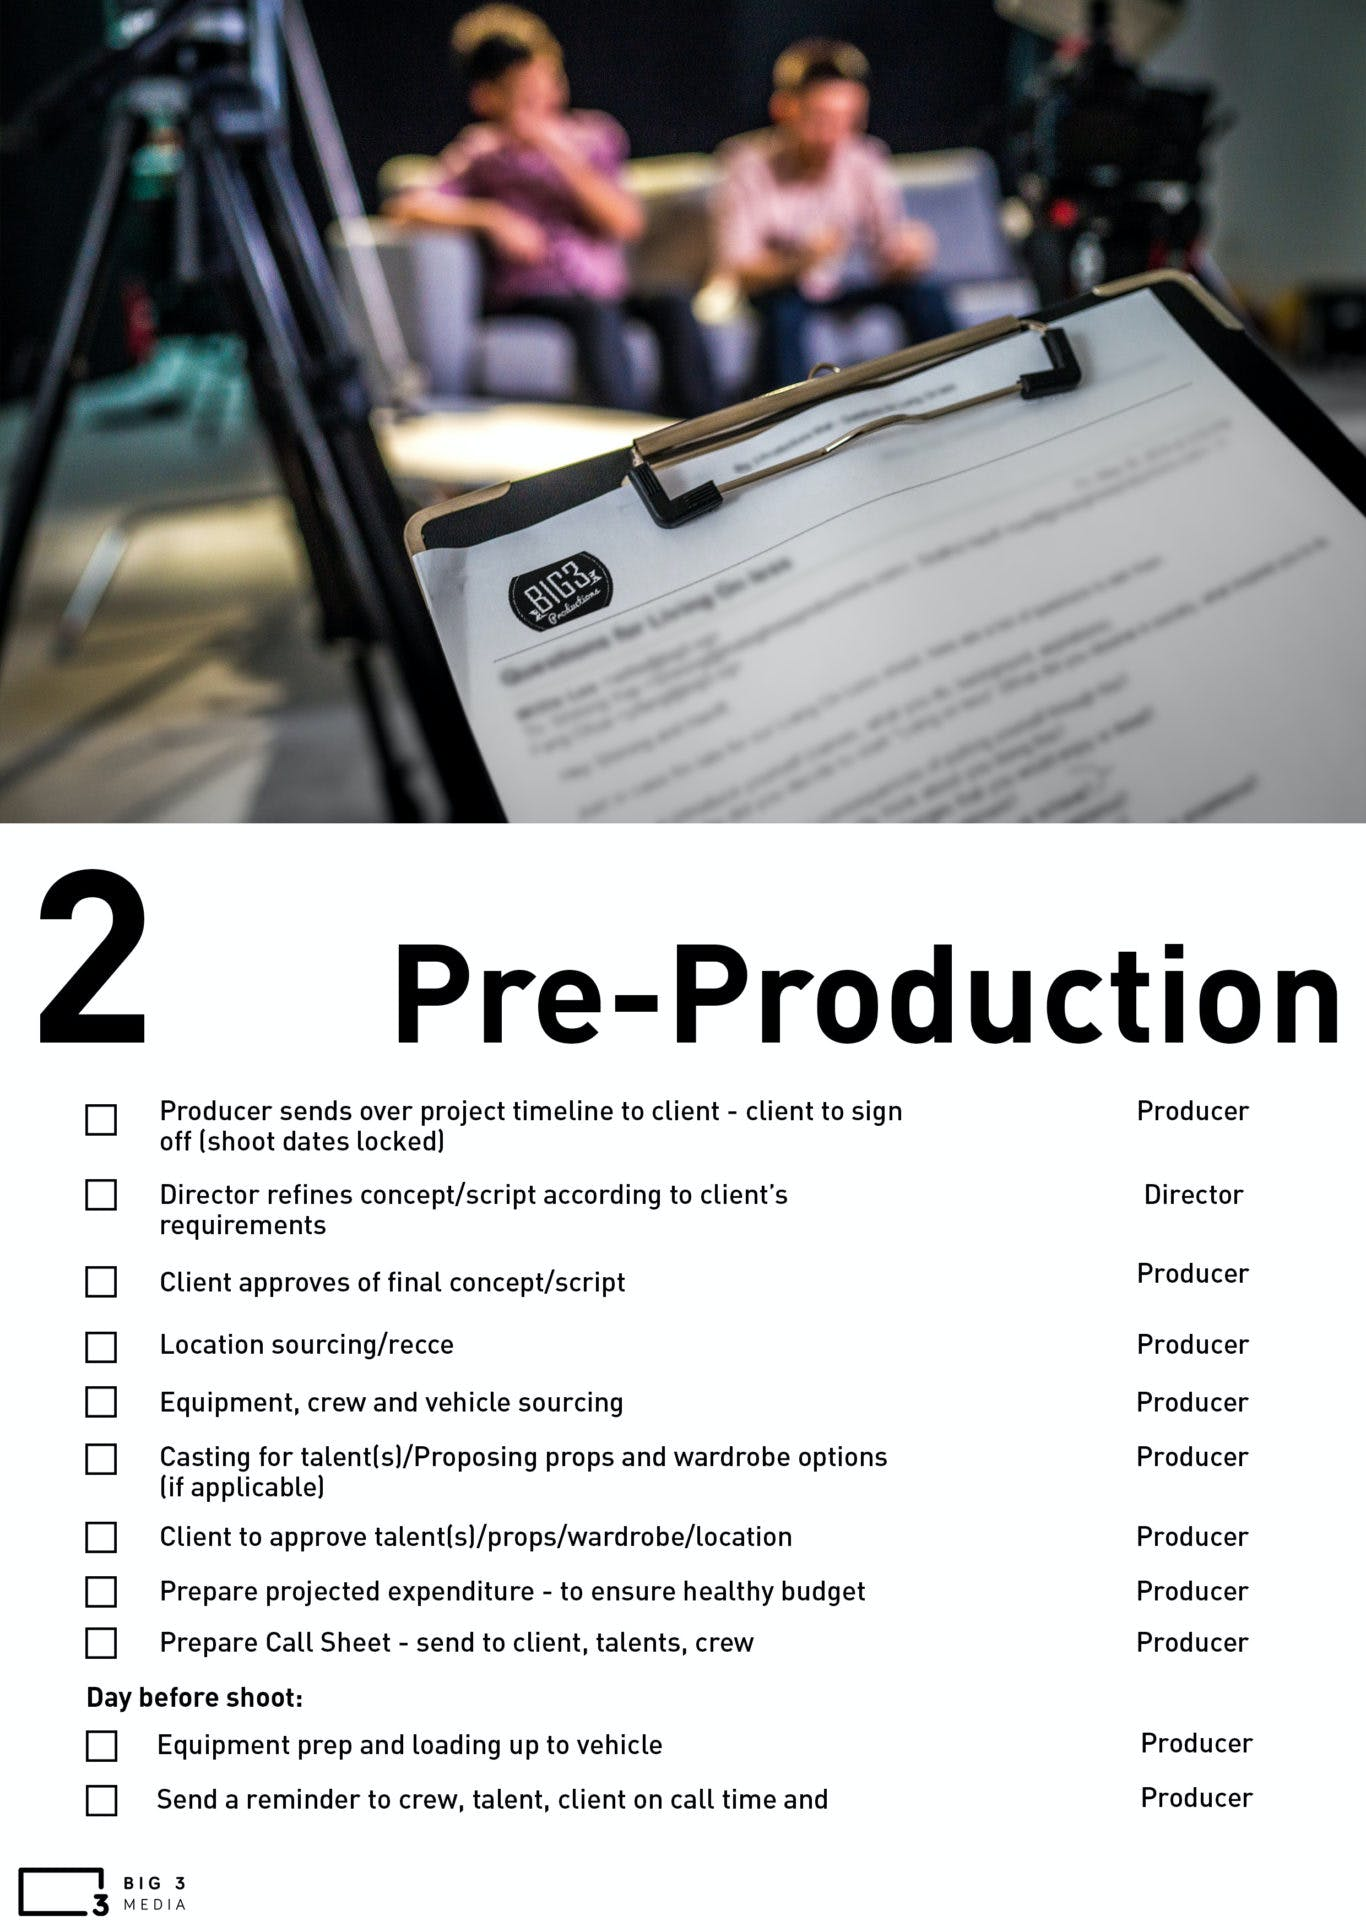 Checklist for preproduction